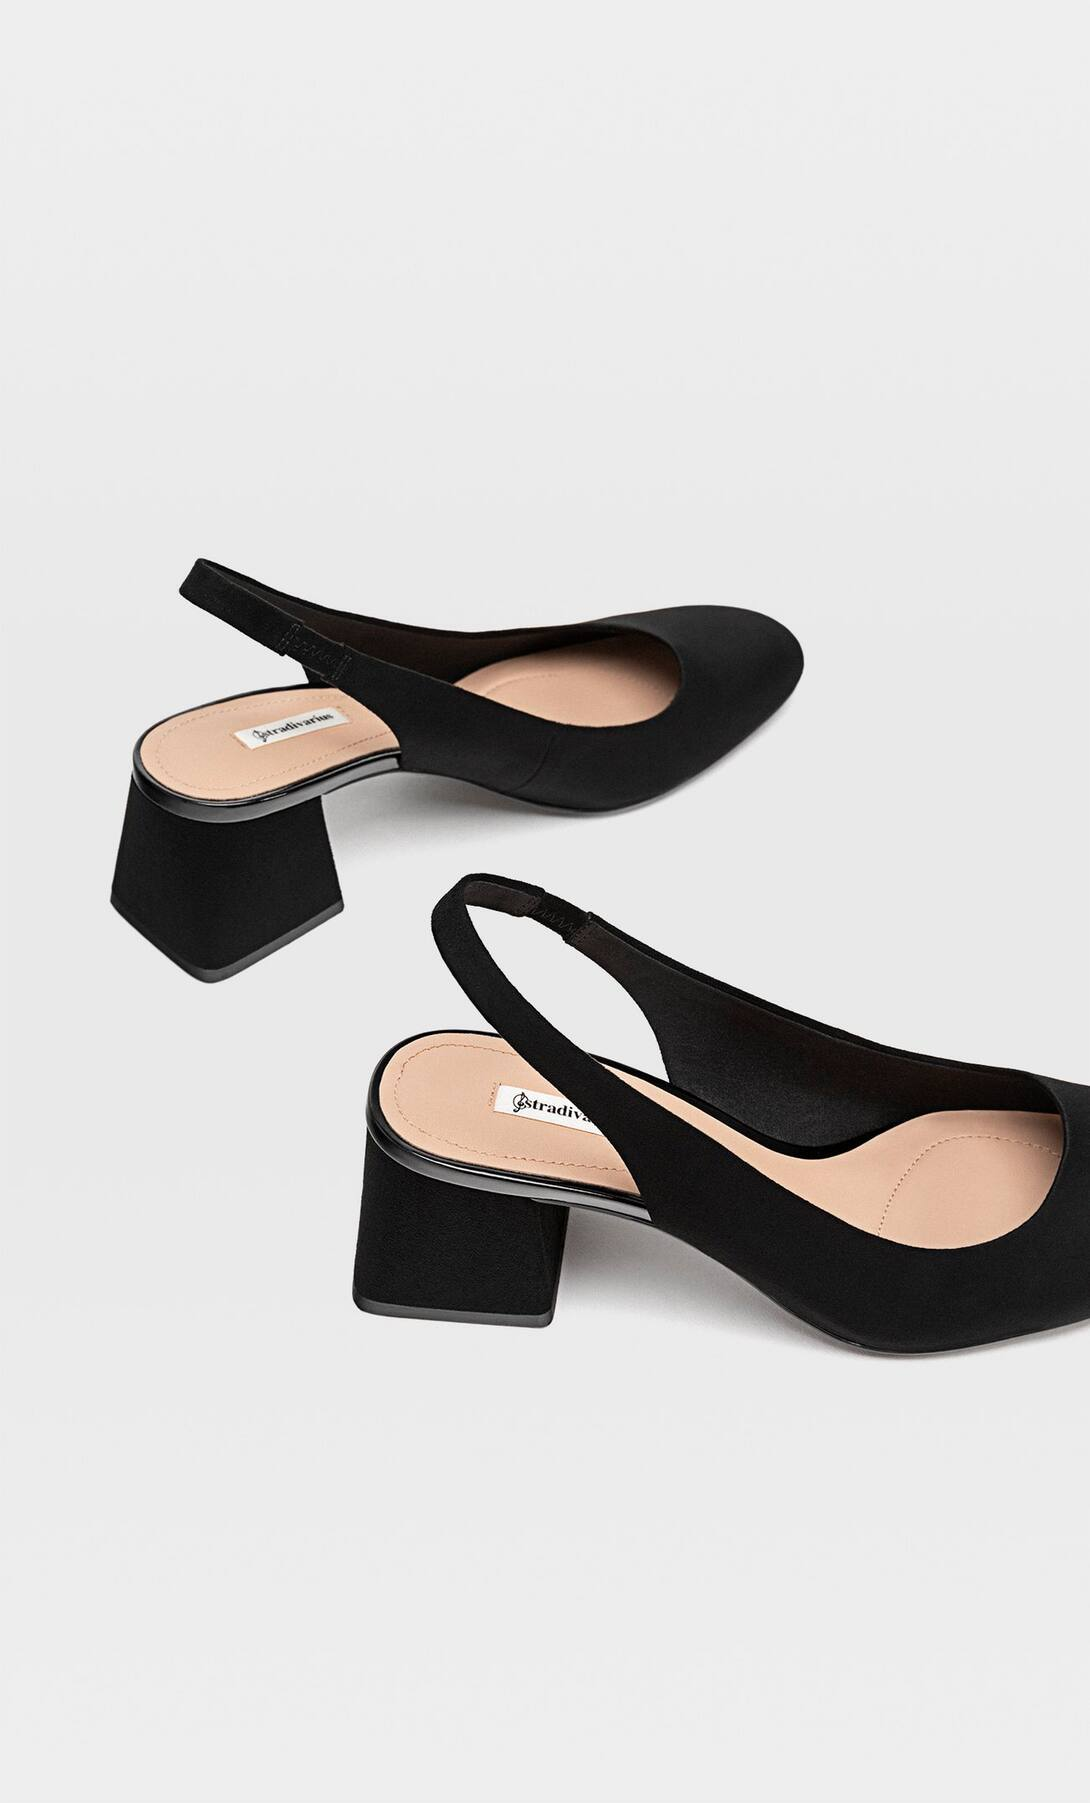 STRADIVARIUS HEELED SLINGBACK SHOES WITH SQUARE TOES